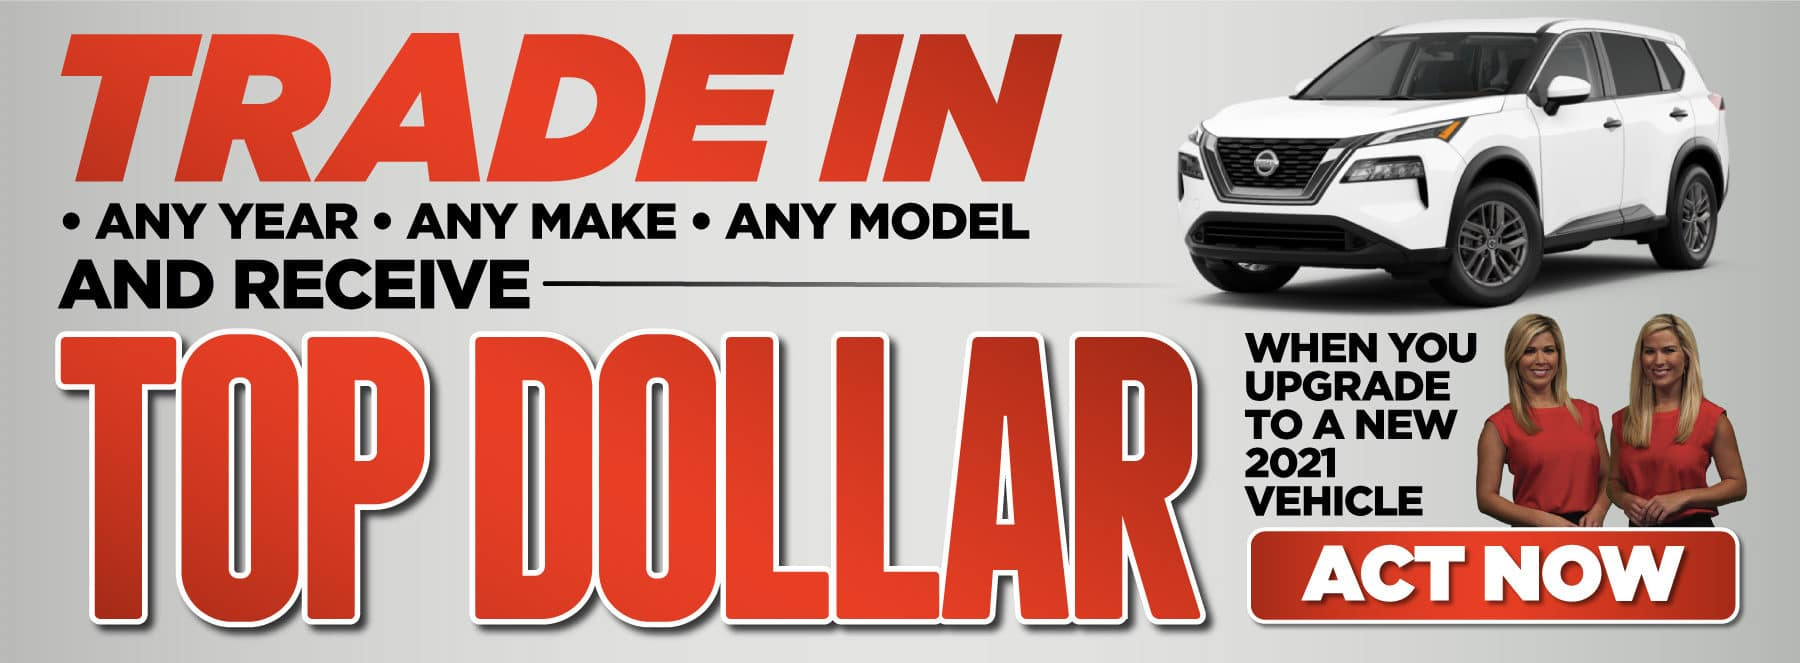 Receive Top Dollar for Your Trade - ACT NOW